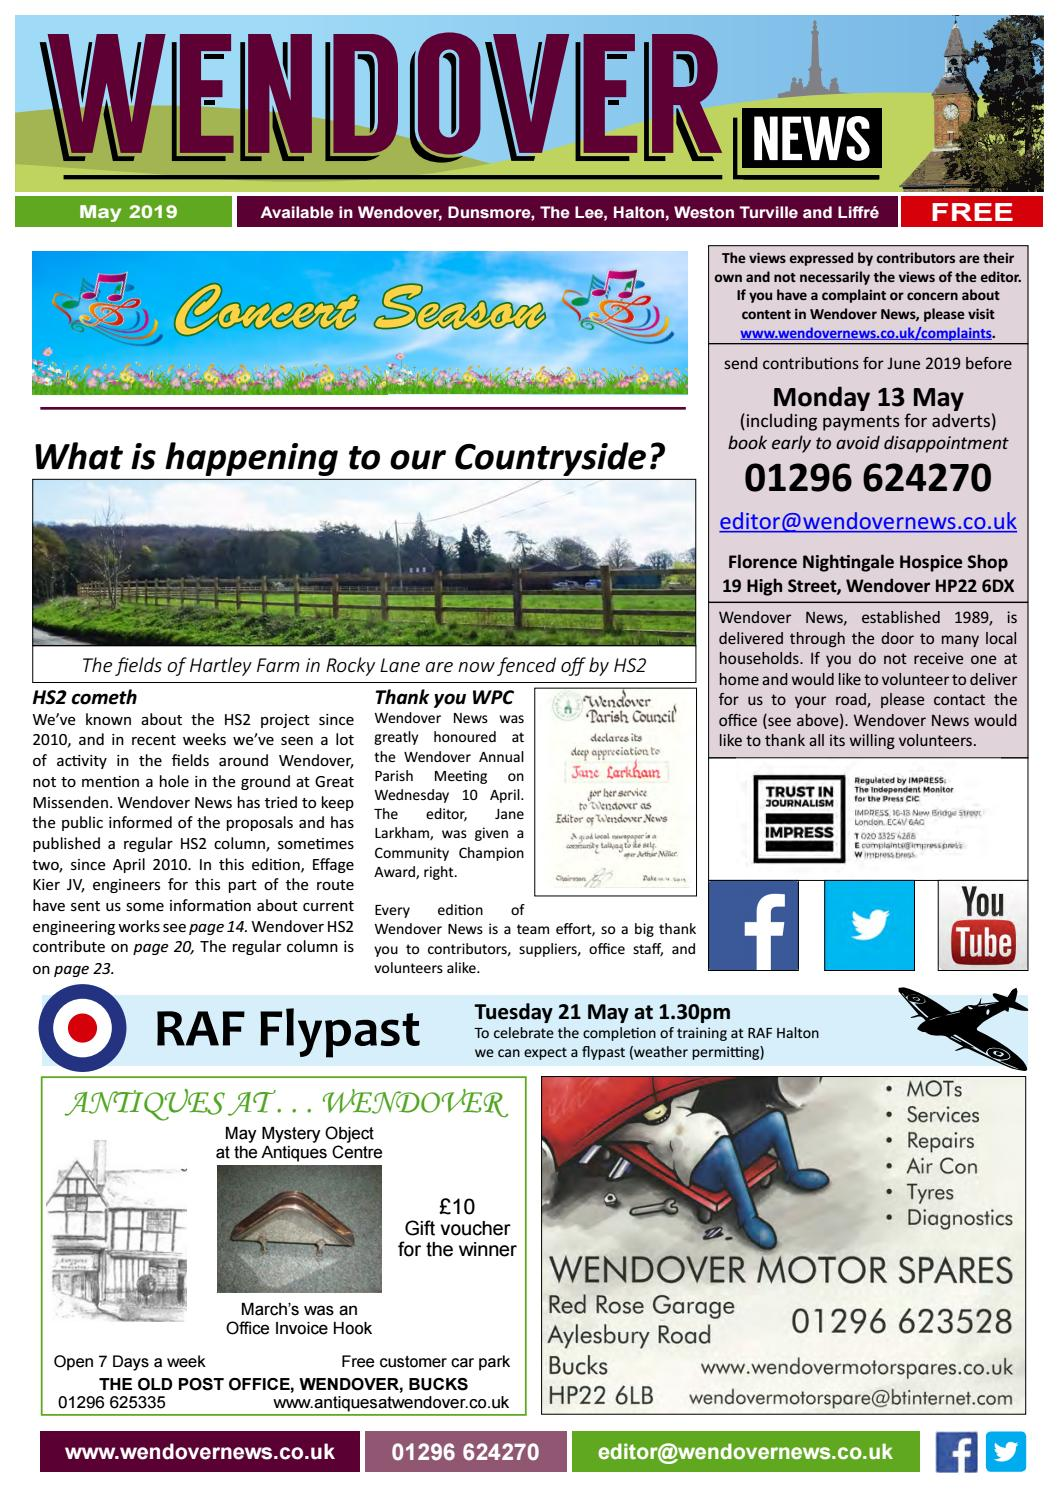 2f0c62d5 Wendover News May 2019 by Wendover News - issuu